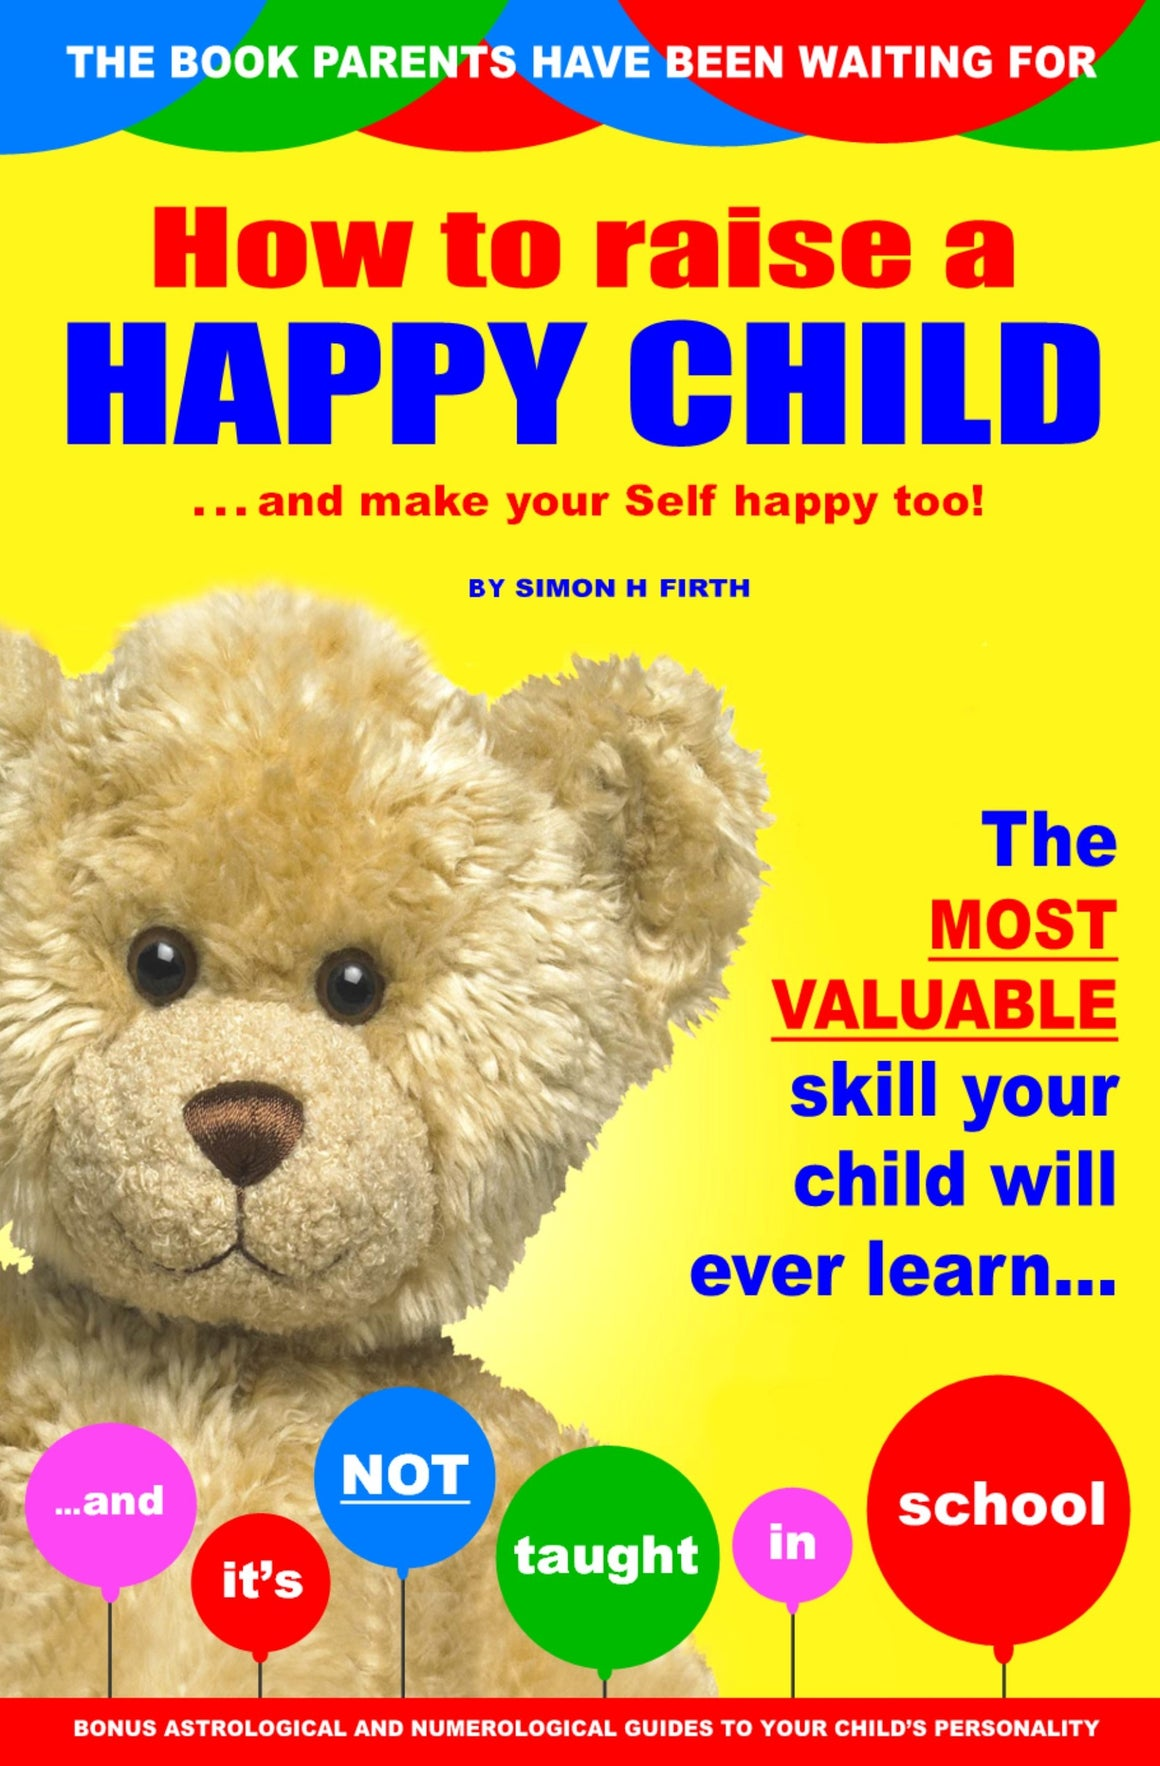 HOW TO RAISE A HAPPY CHILD: And make your Self happy too! (374 pages)